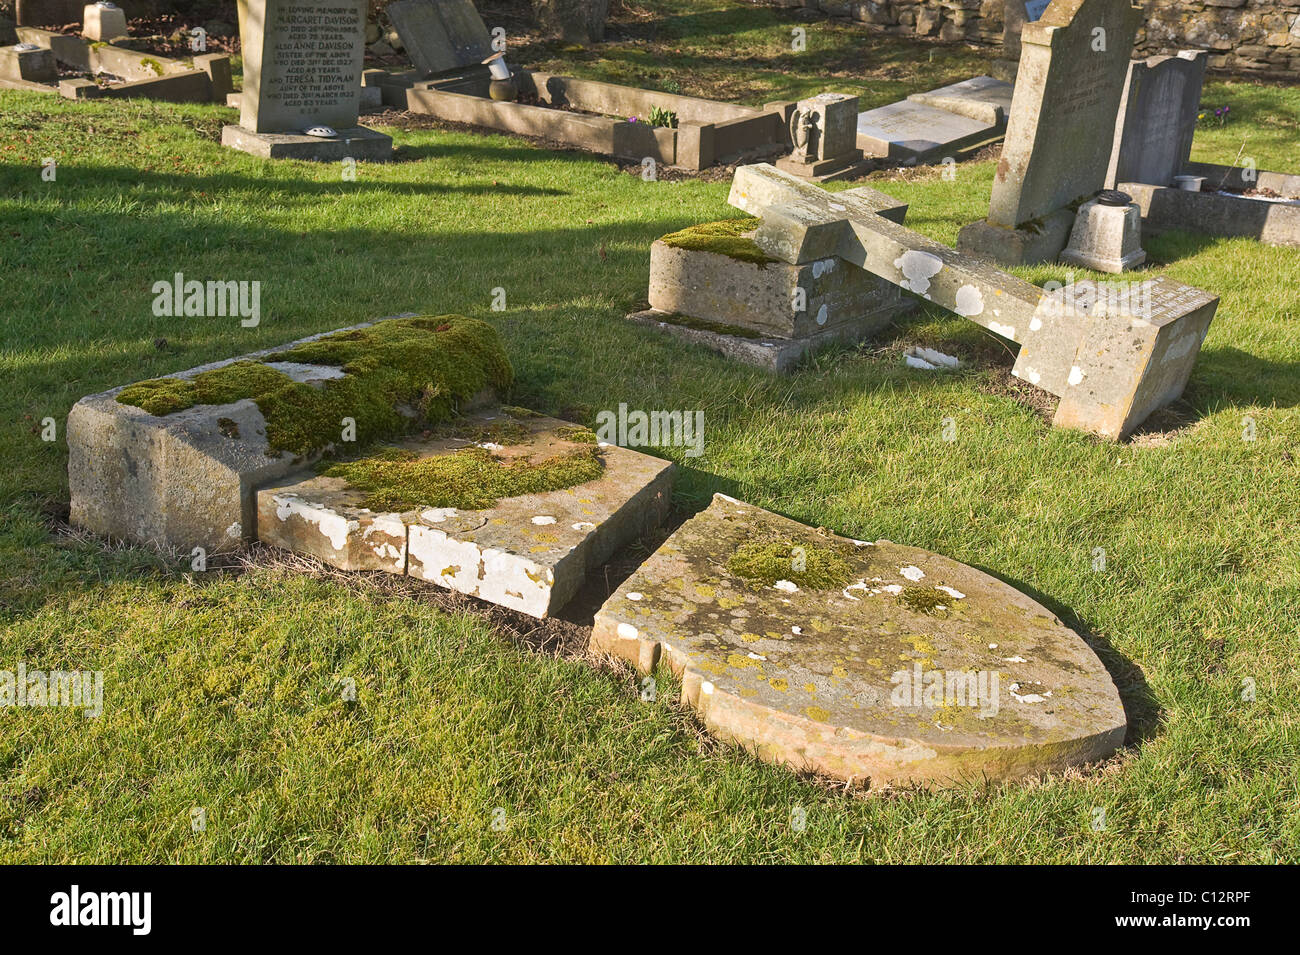 Grave stones flattened in the name of safety. Churchyard in Yorkshire. - Stock Image